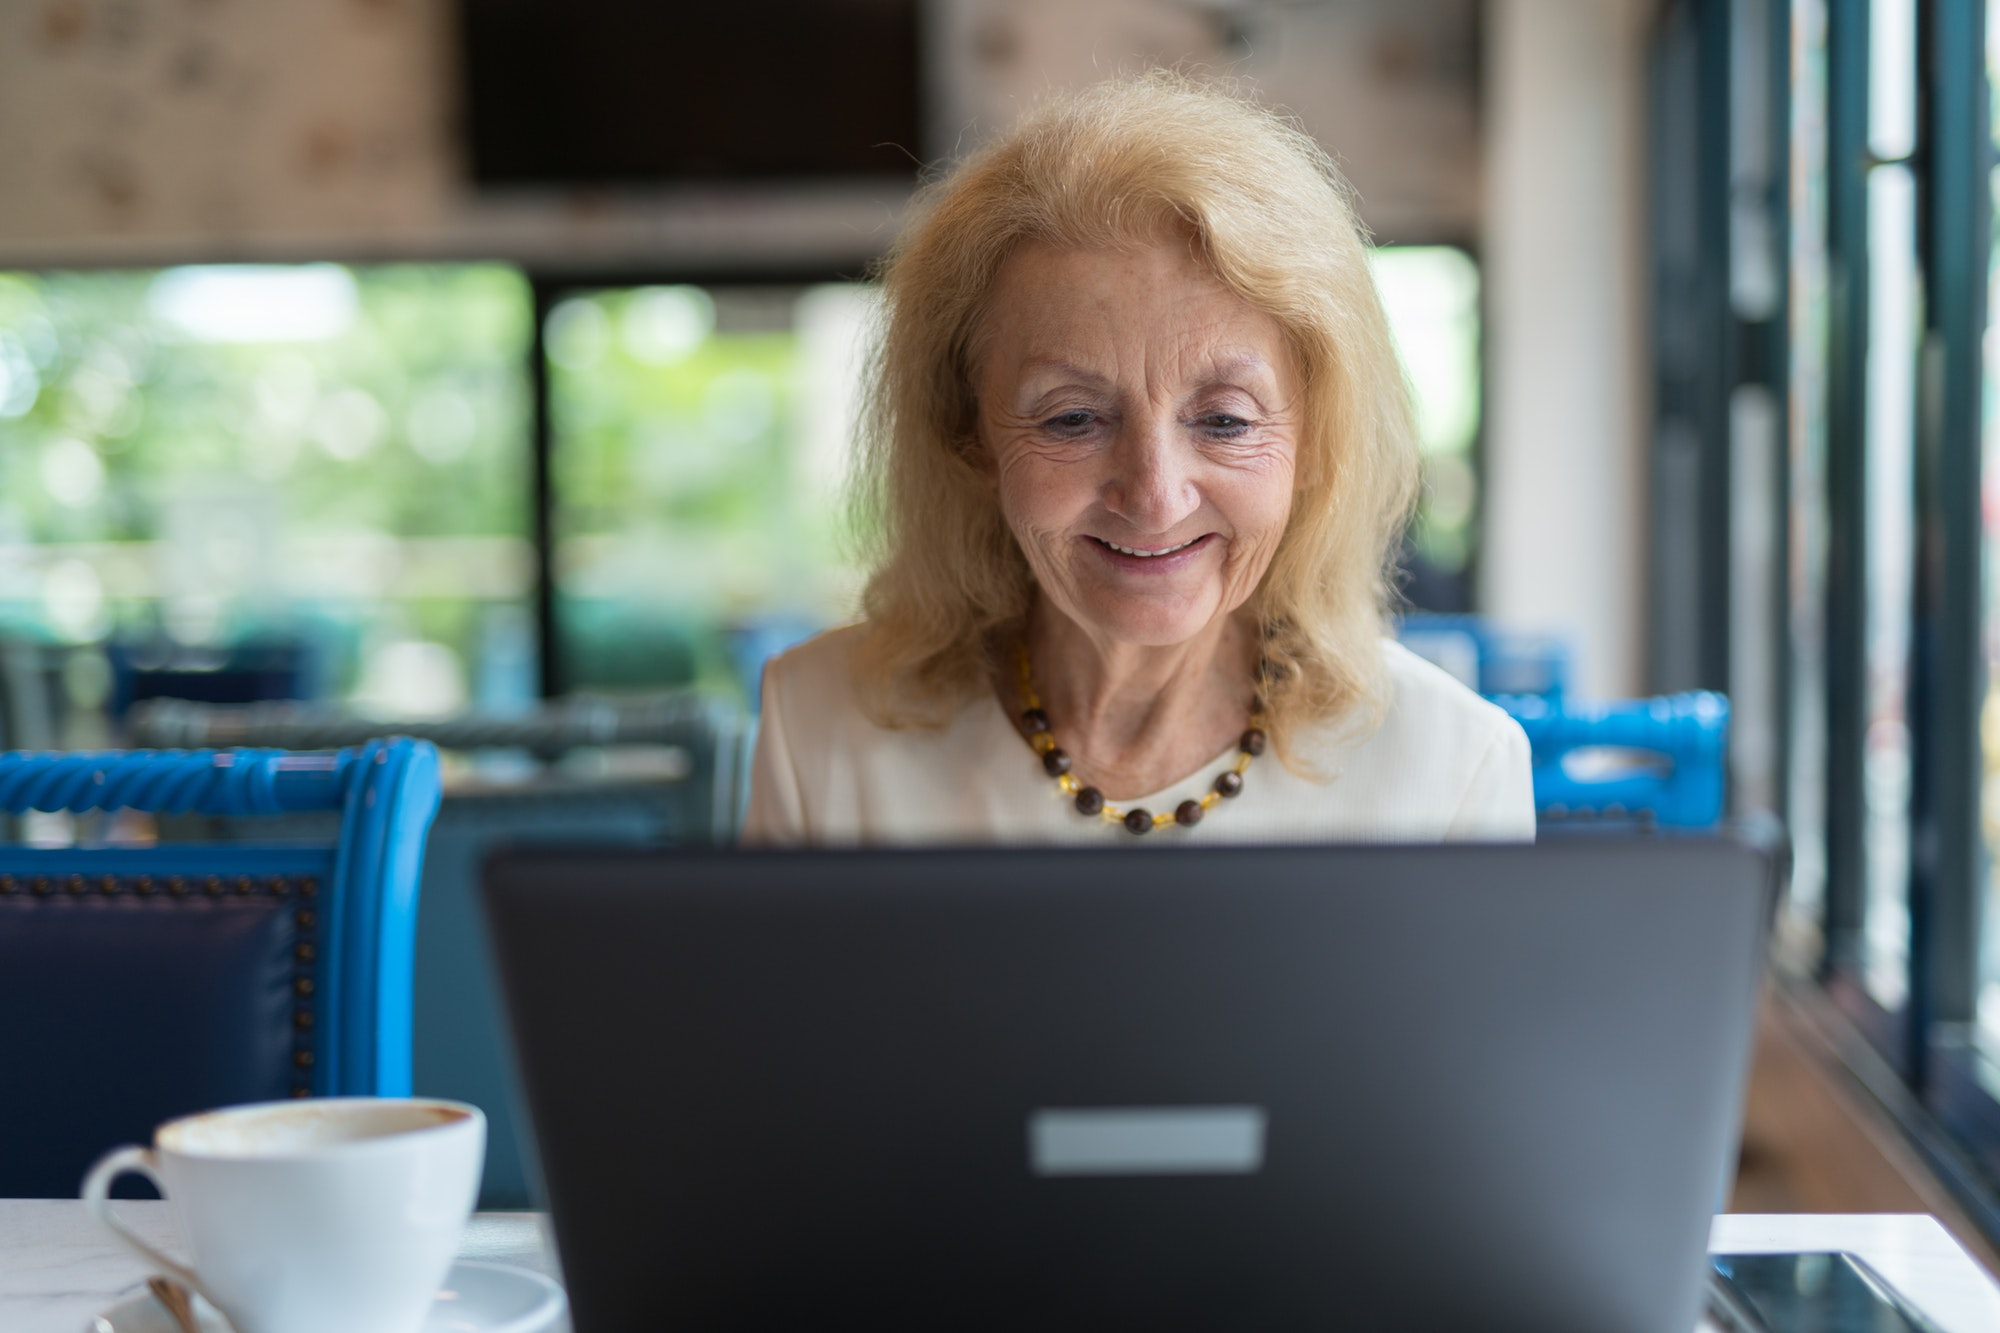 Happy senior woman smiling and using laptop computer in coffee shop